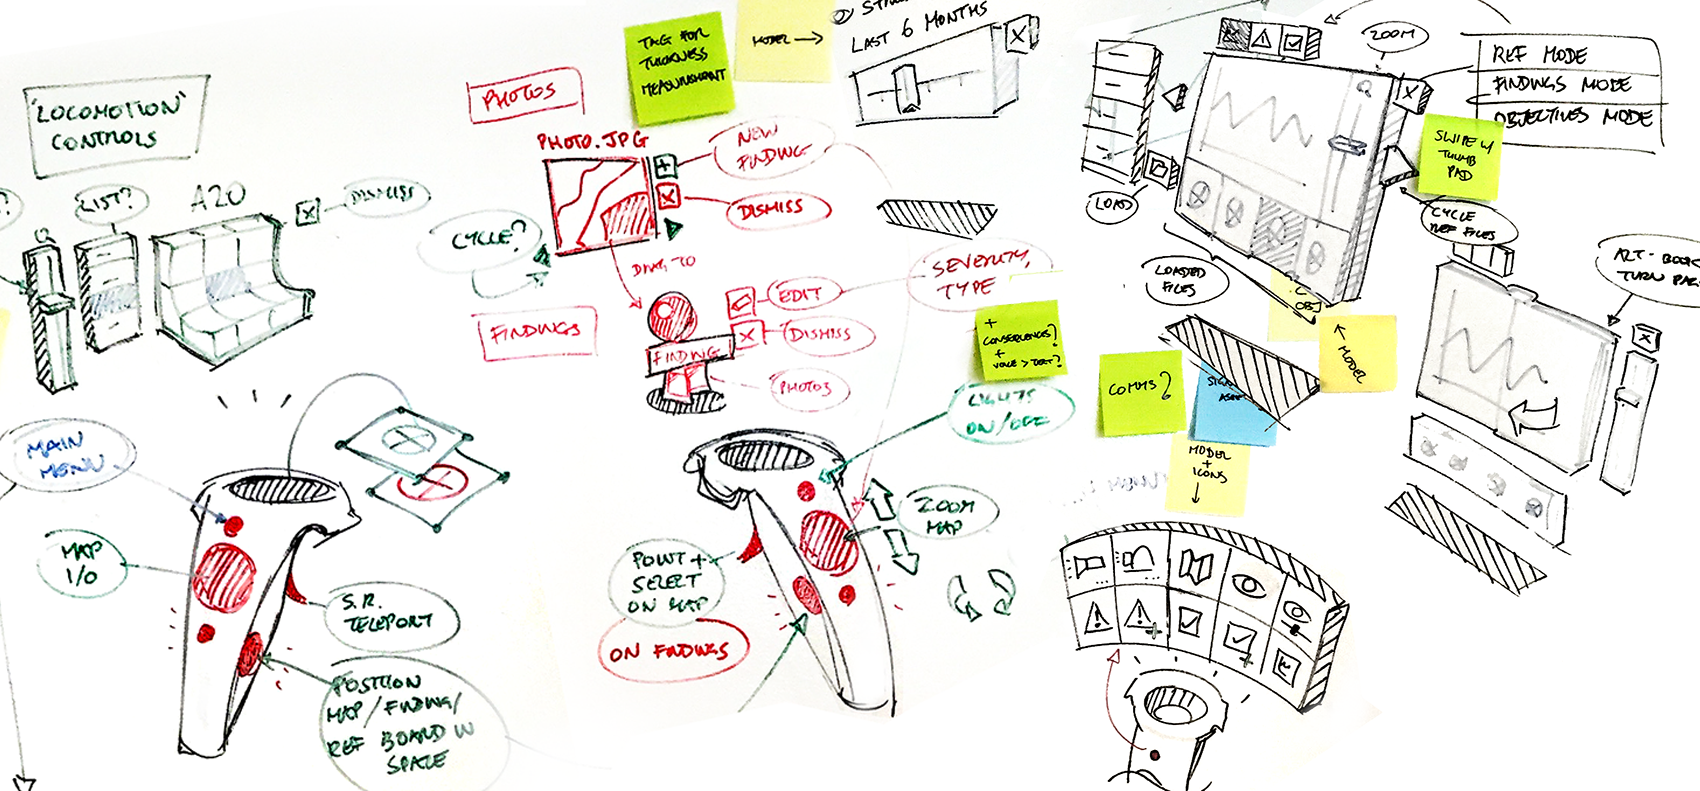 Whiteboard sketches used to work out a UI design. Design for VR required many iterations to explore which UI controls and interactions worked best on the platform. I worked closely with our developers, making extensive use of sketches and quick 3D models to quickly convey ideas